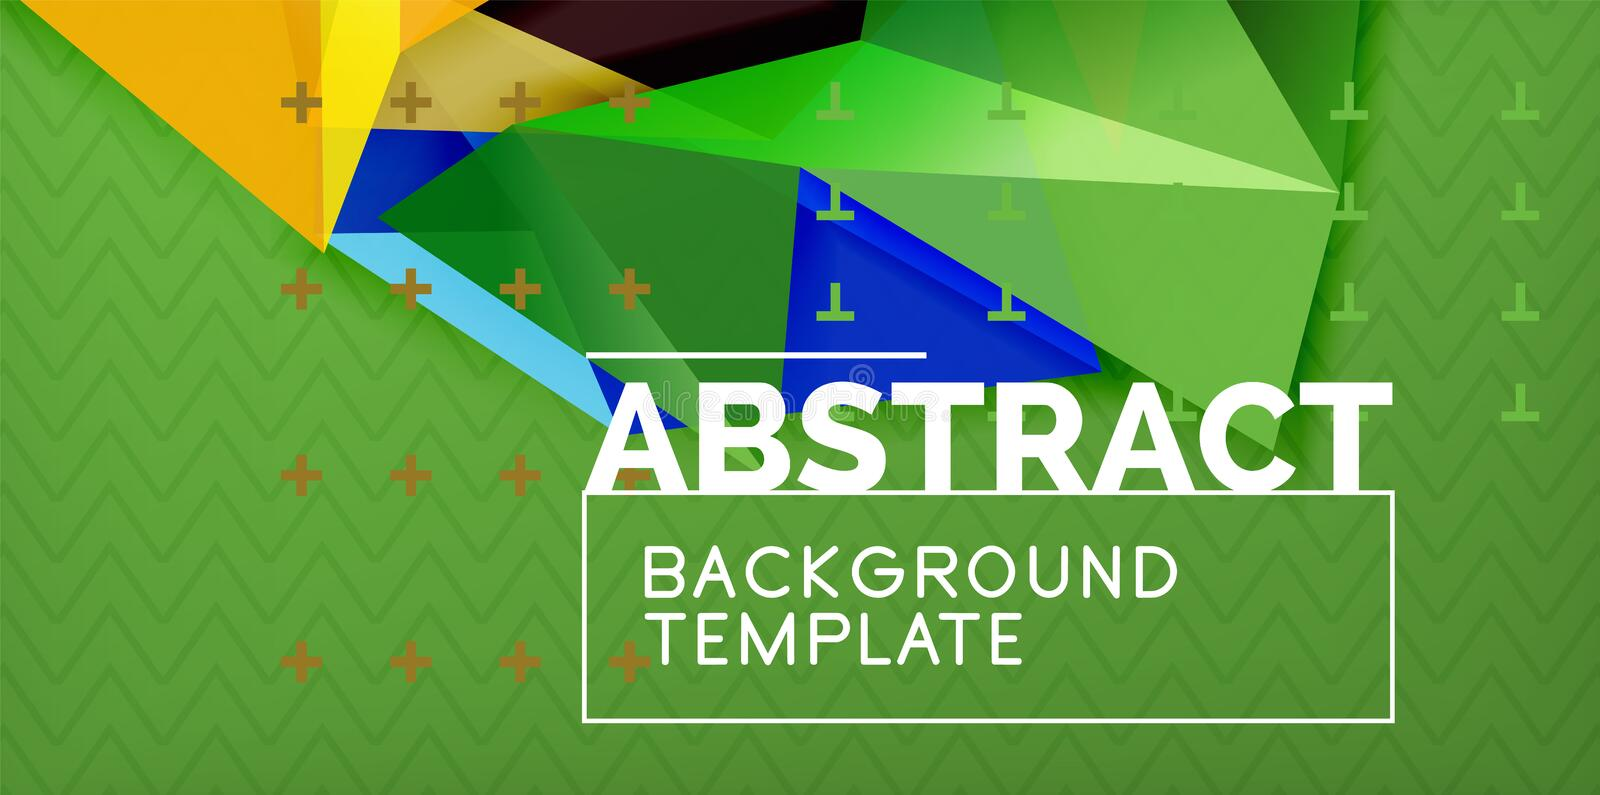 Low poly design 3d triangular shape background, mosaic abstract design template vector illustration